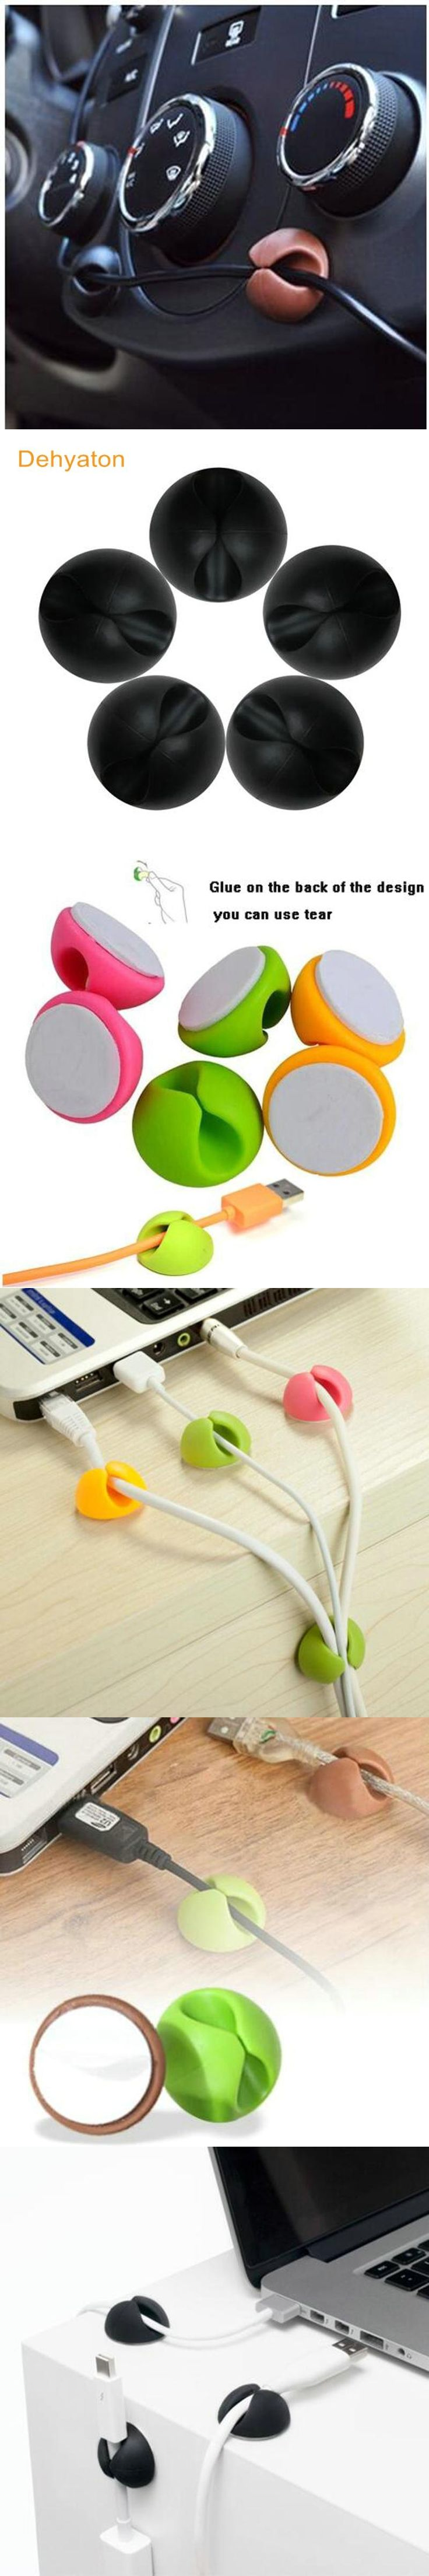 Dehyaton Round Colorful Smart Cable Drop Clip Desk Organiser Wire Cord Lead USB Charger Cord Holder Organizer Holder protector